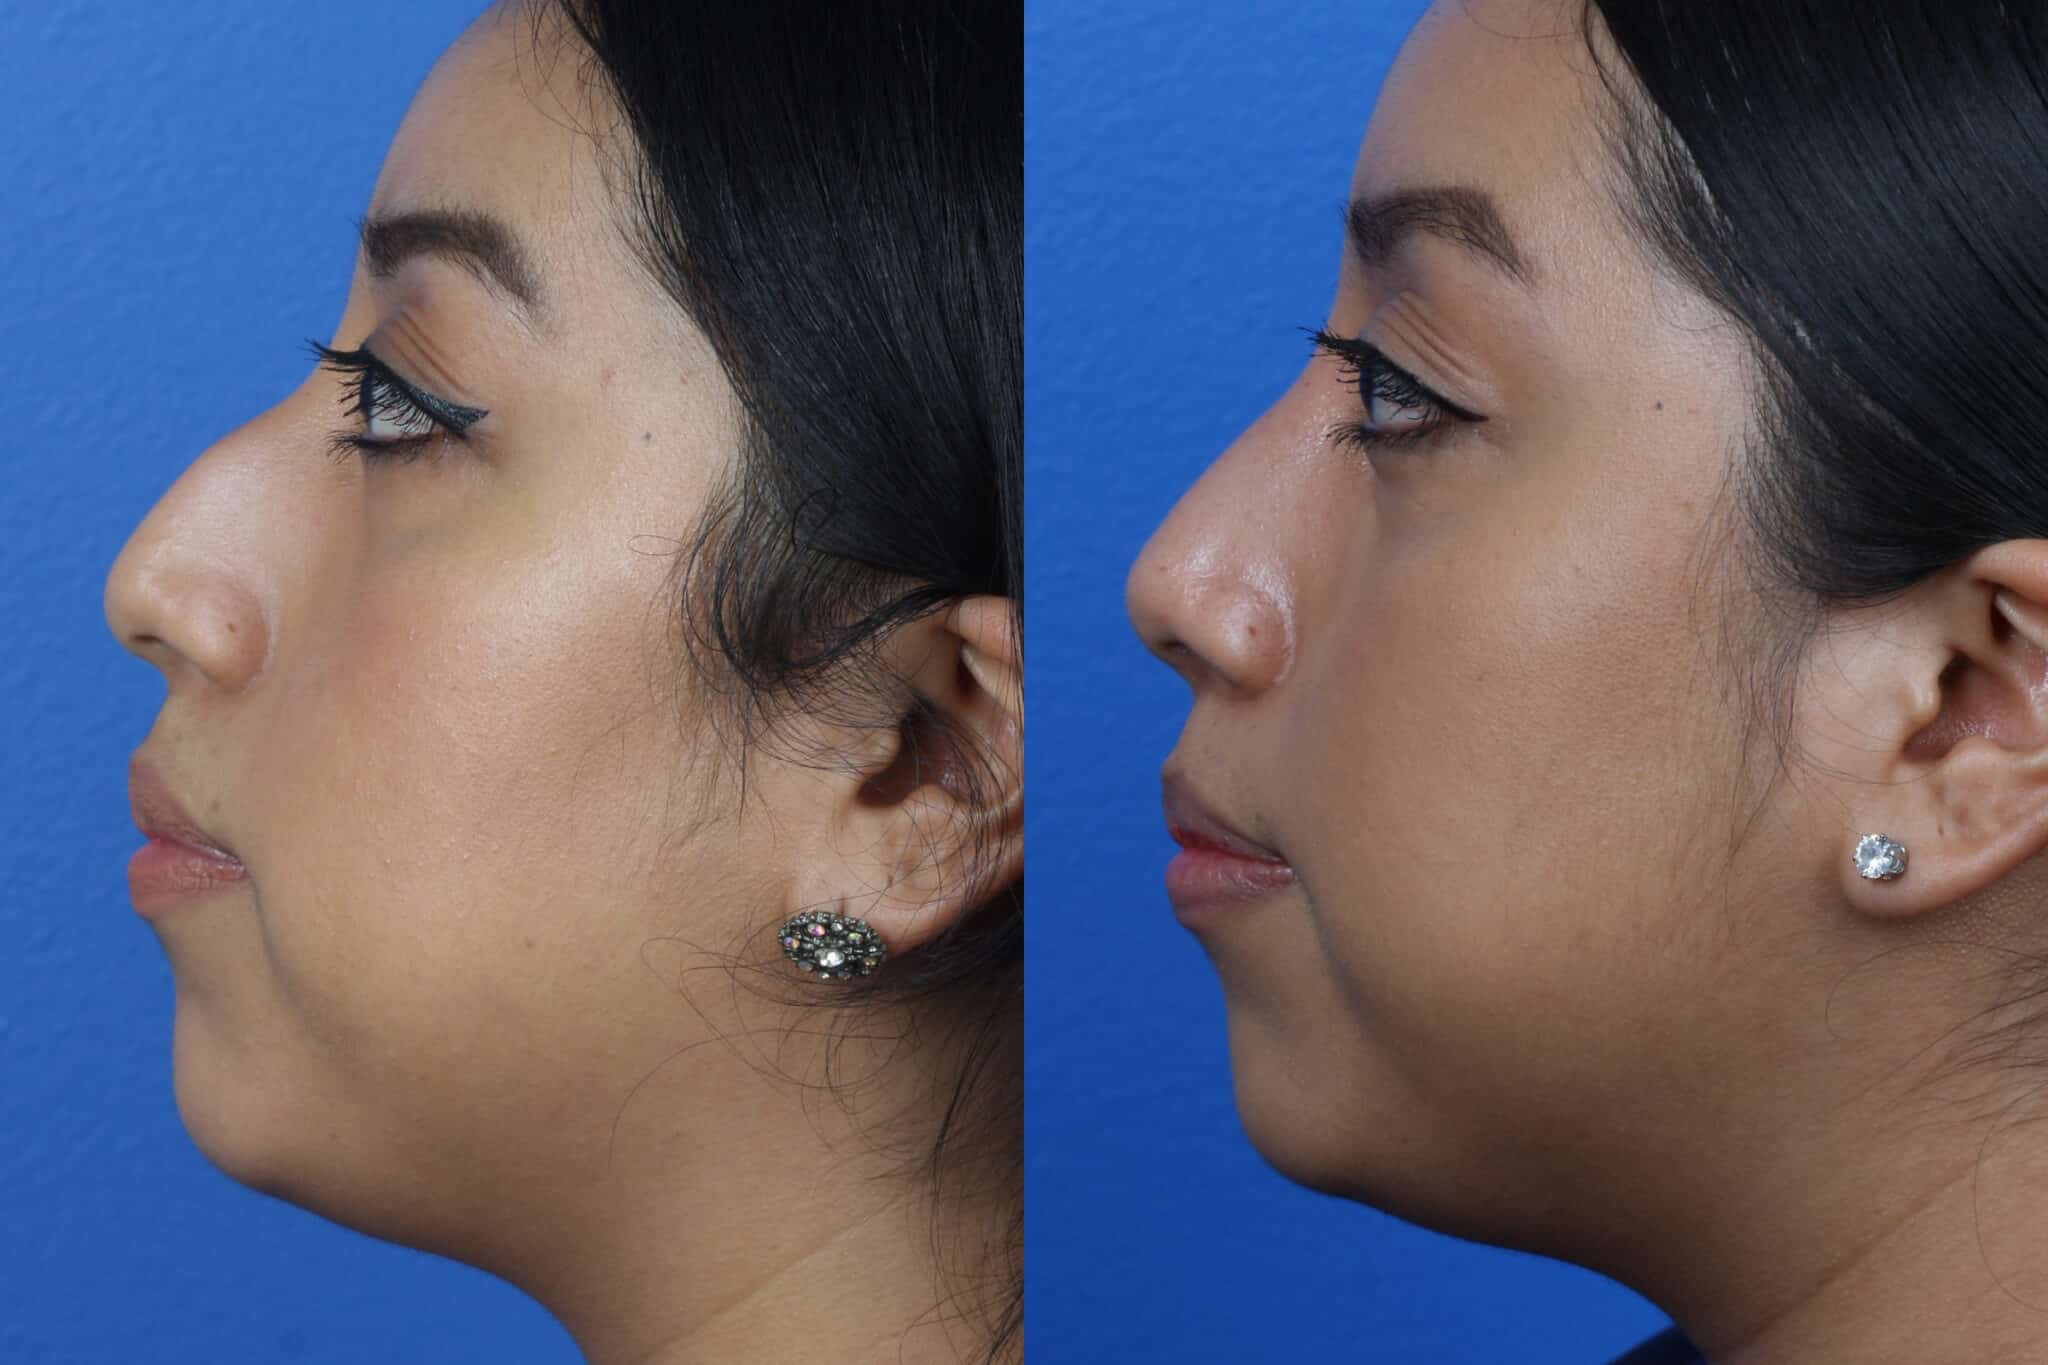 Rhinoplasty to Straighten the Nasal Bridge of a Female Patient by Dr. Miller